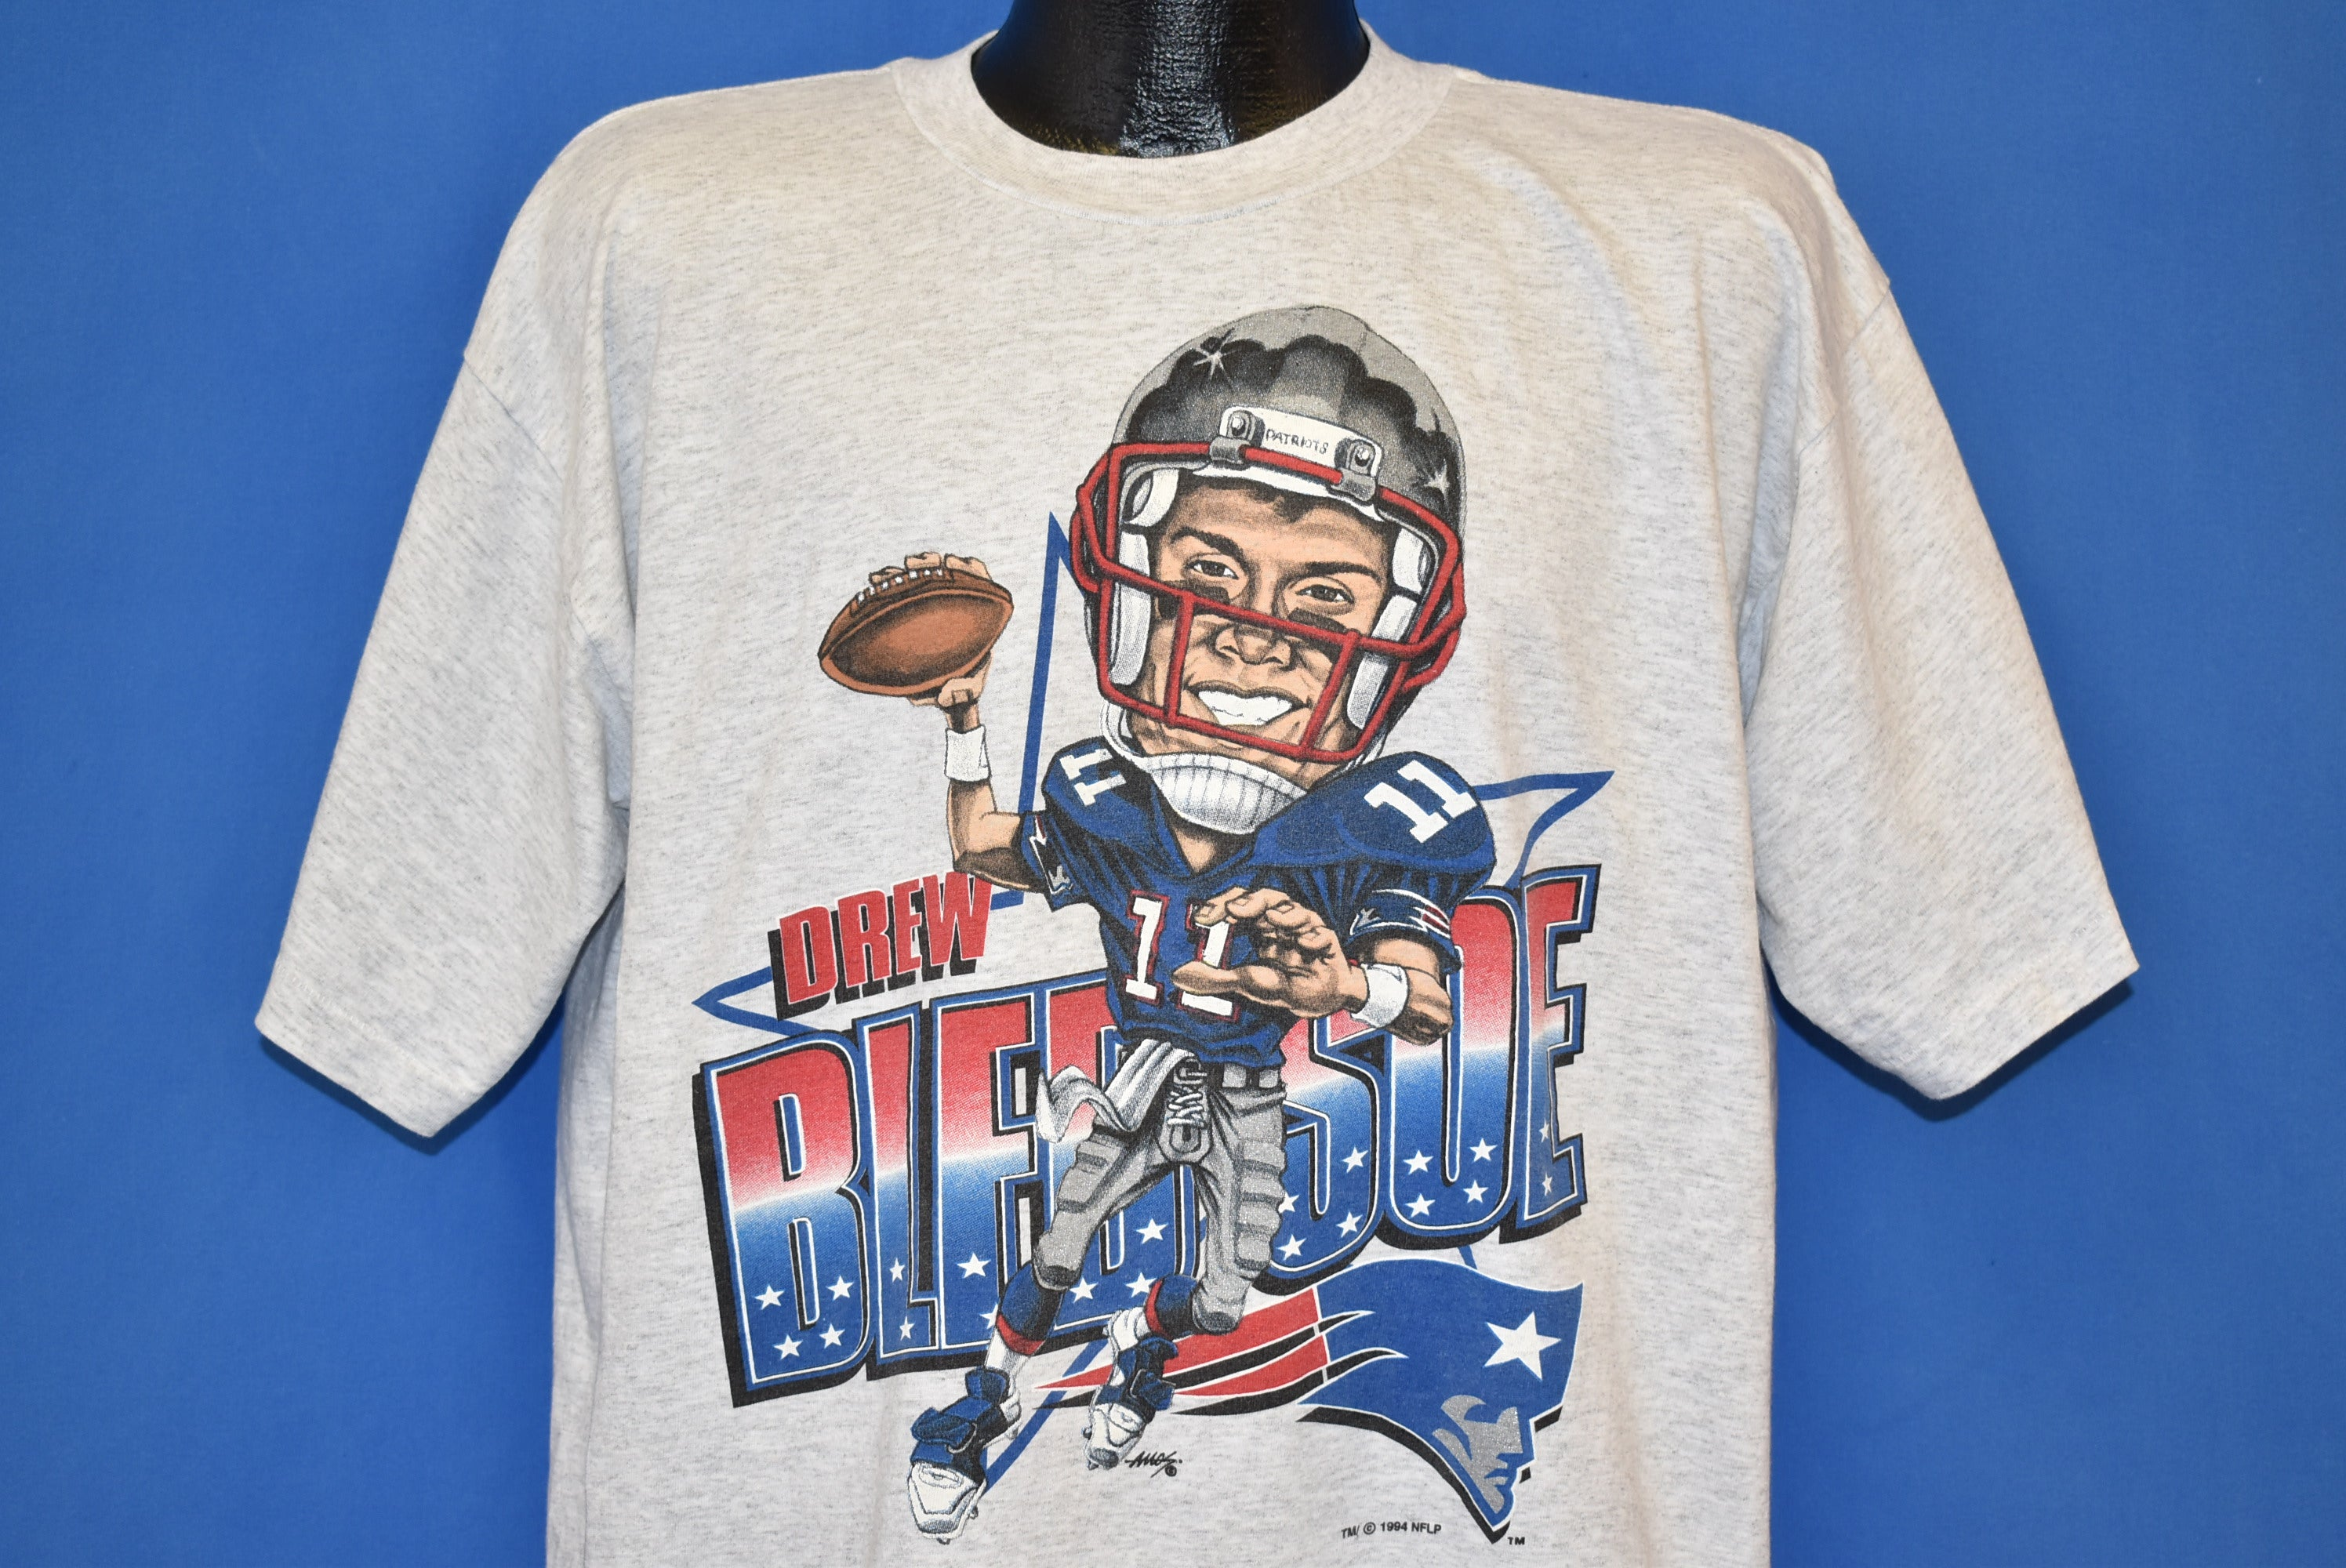 d9ca941dcd9 90s Drew Bledsoe New England Patriots Caricature t-shirt Large - The ...